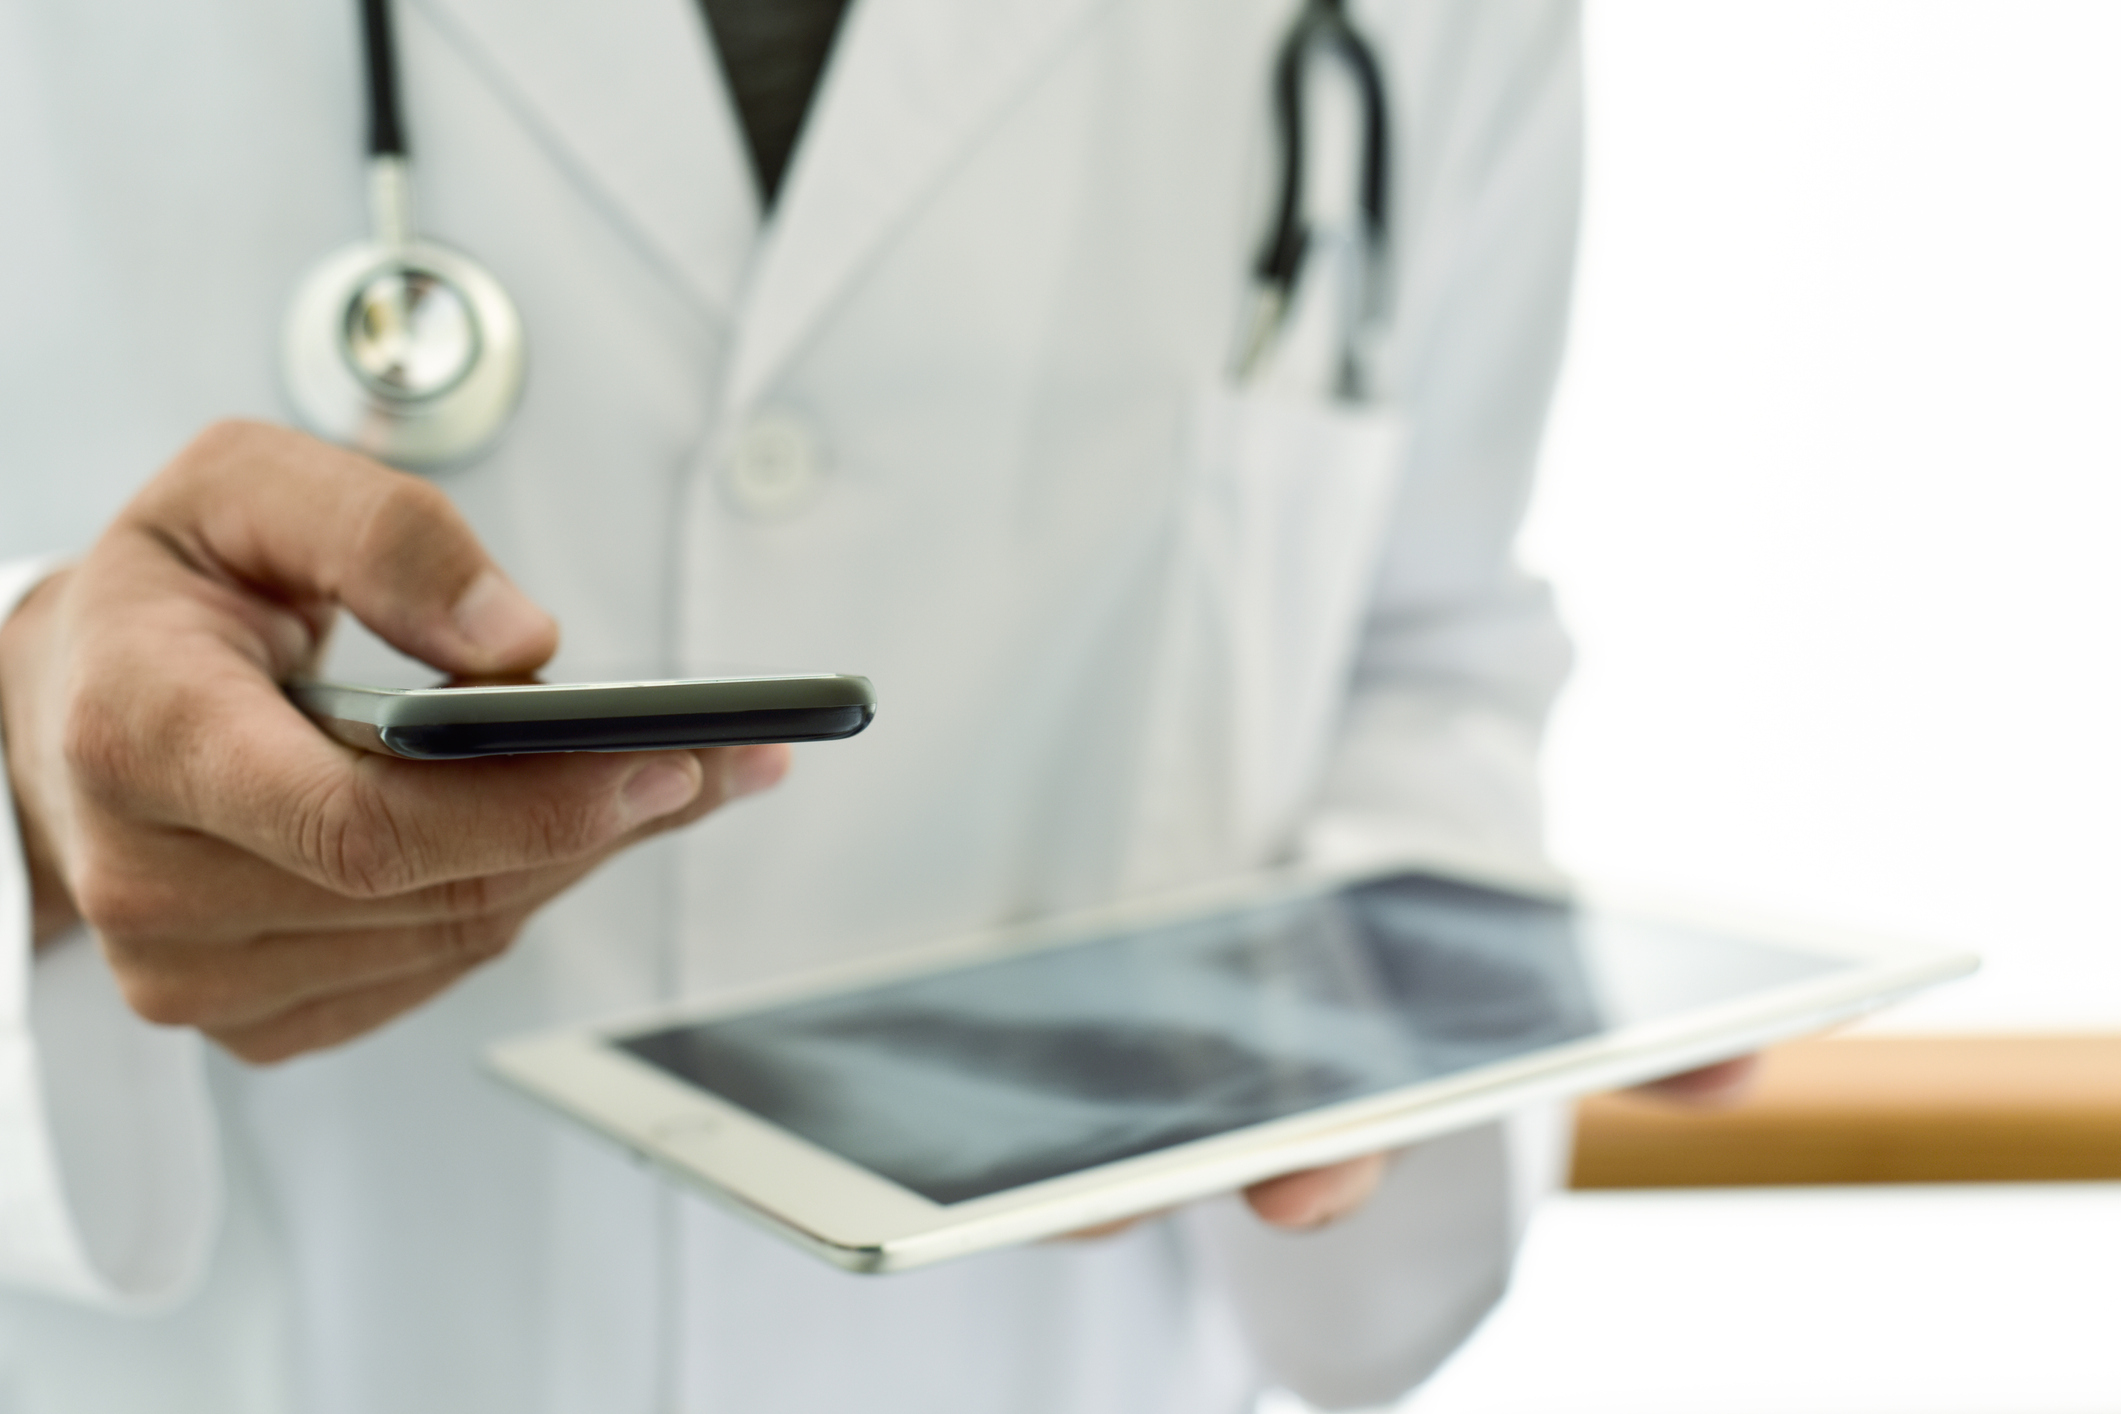 COMMUNICATION WITH PATIENT's PRIMARY PHYSICIAN - Communication with patient's primary physician for treatment options and medication management